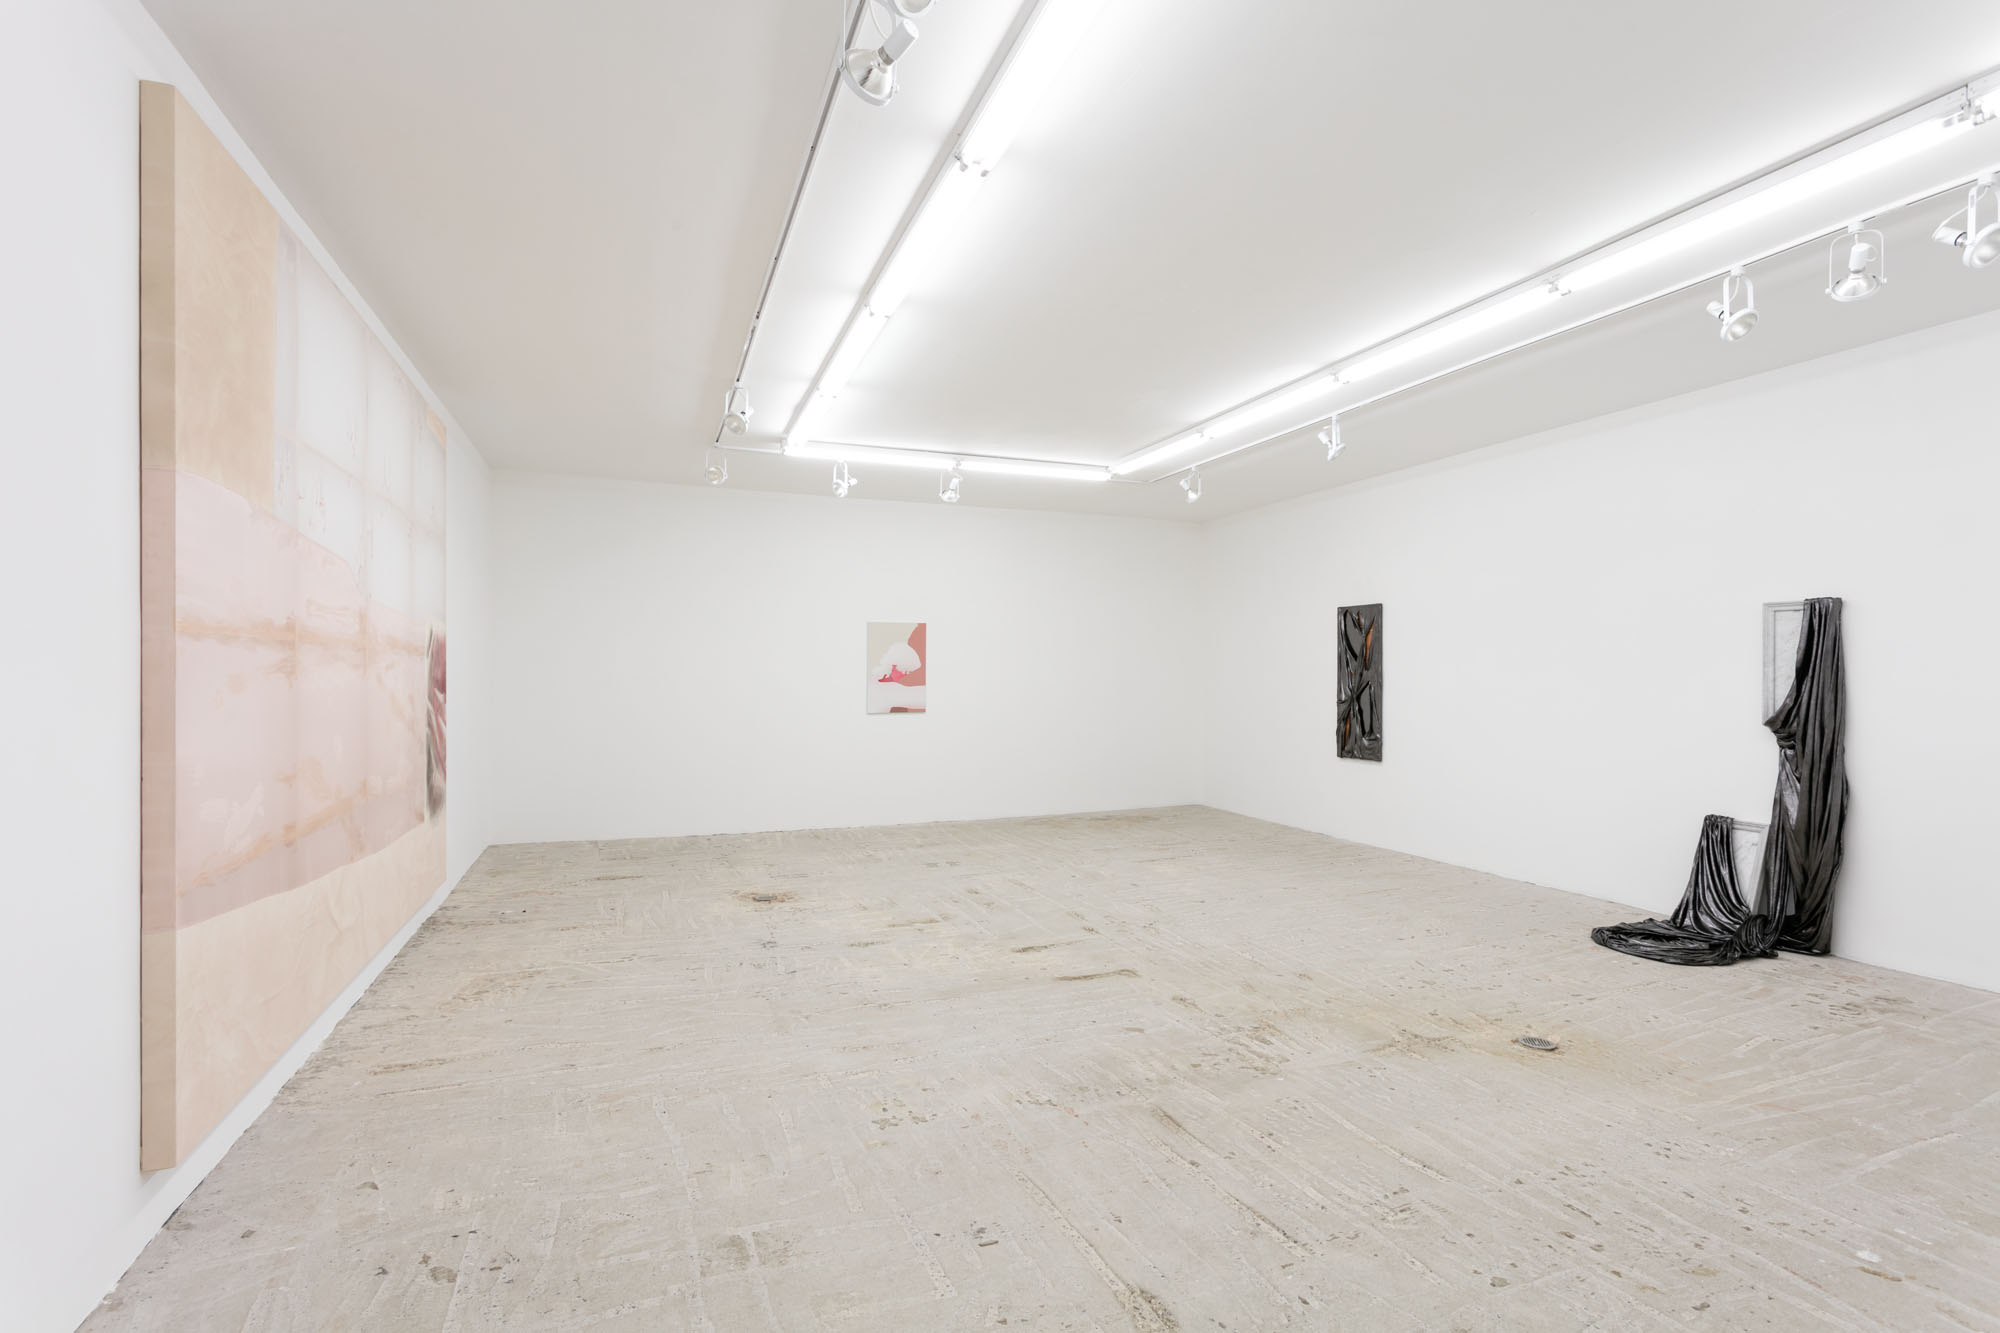 Touch Knows You Before Language,  Installation view at Lyles & King, May 23 - July 12, 2019